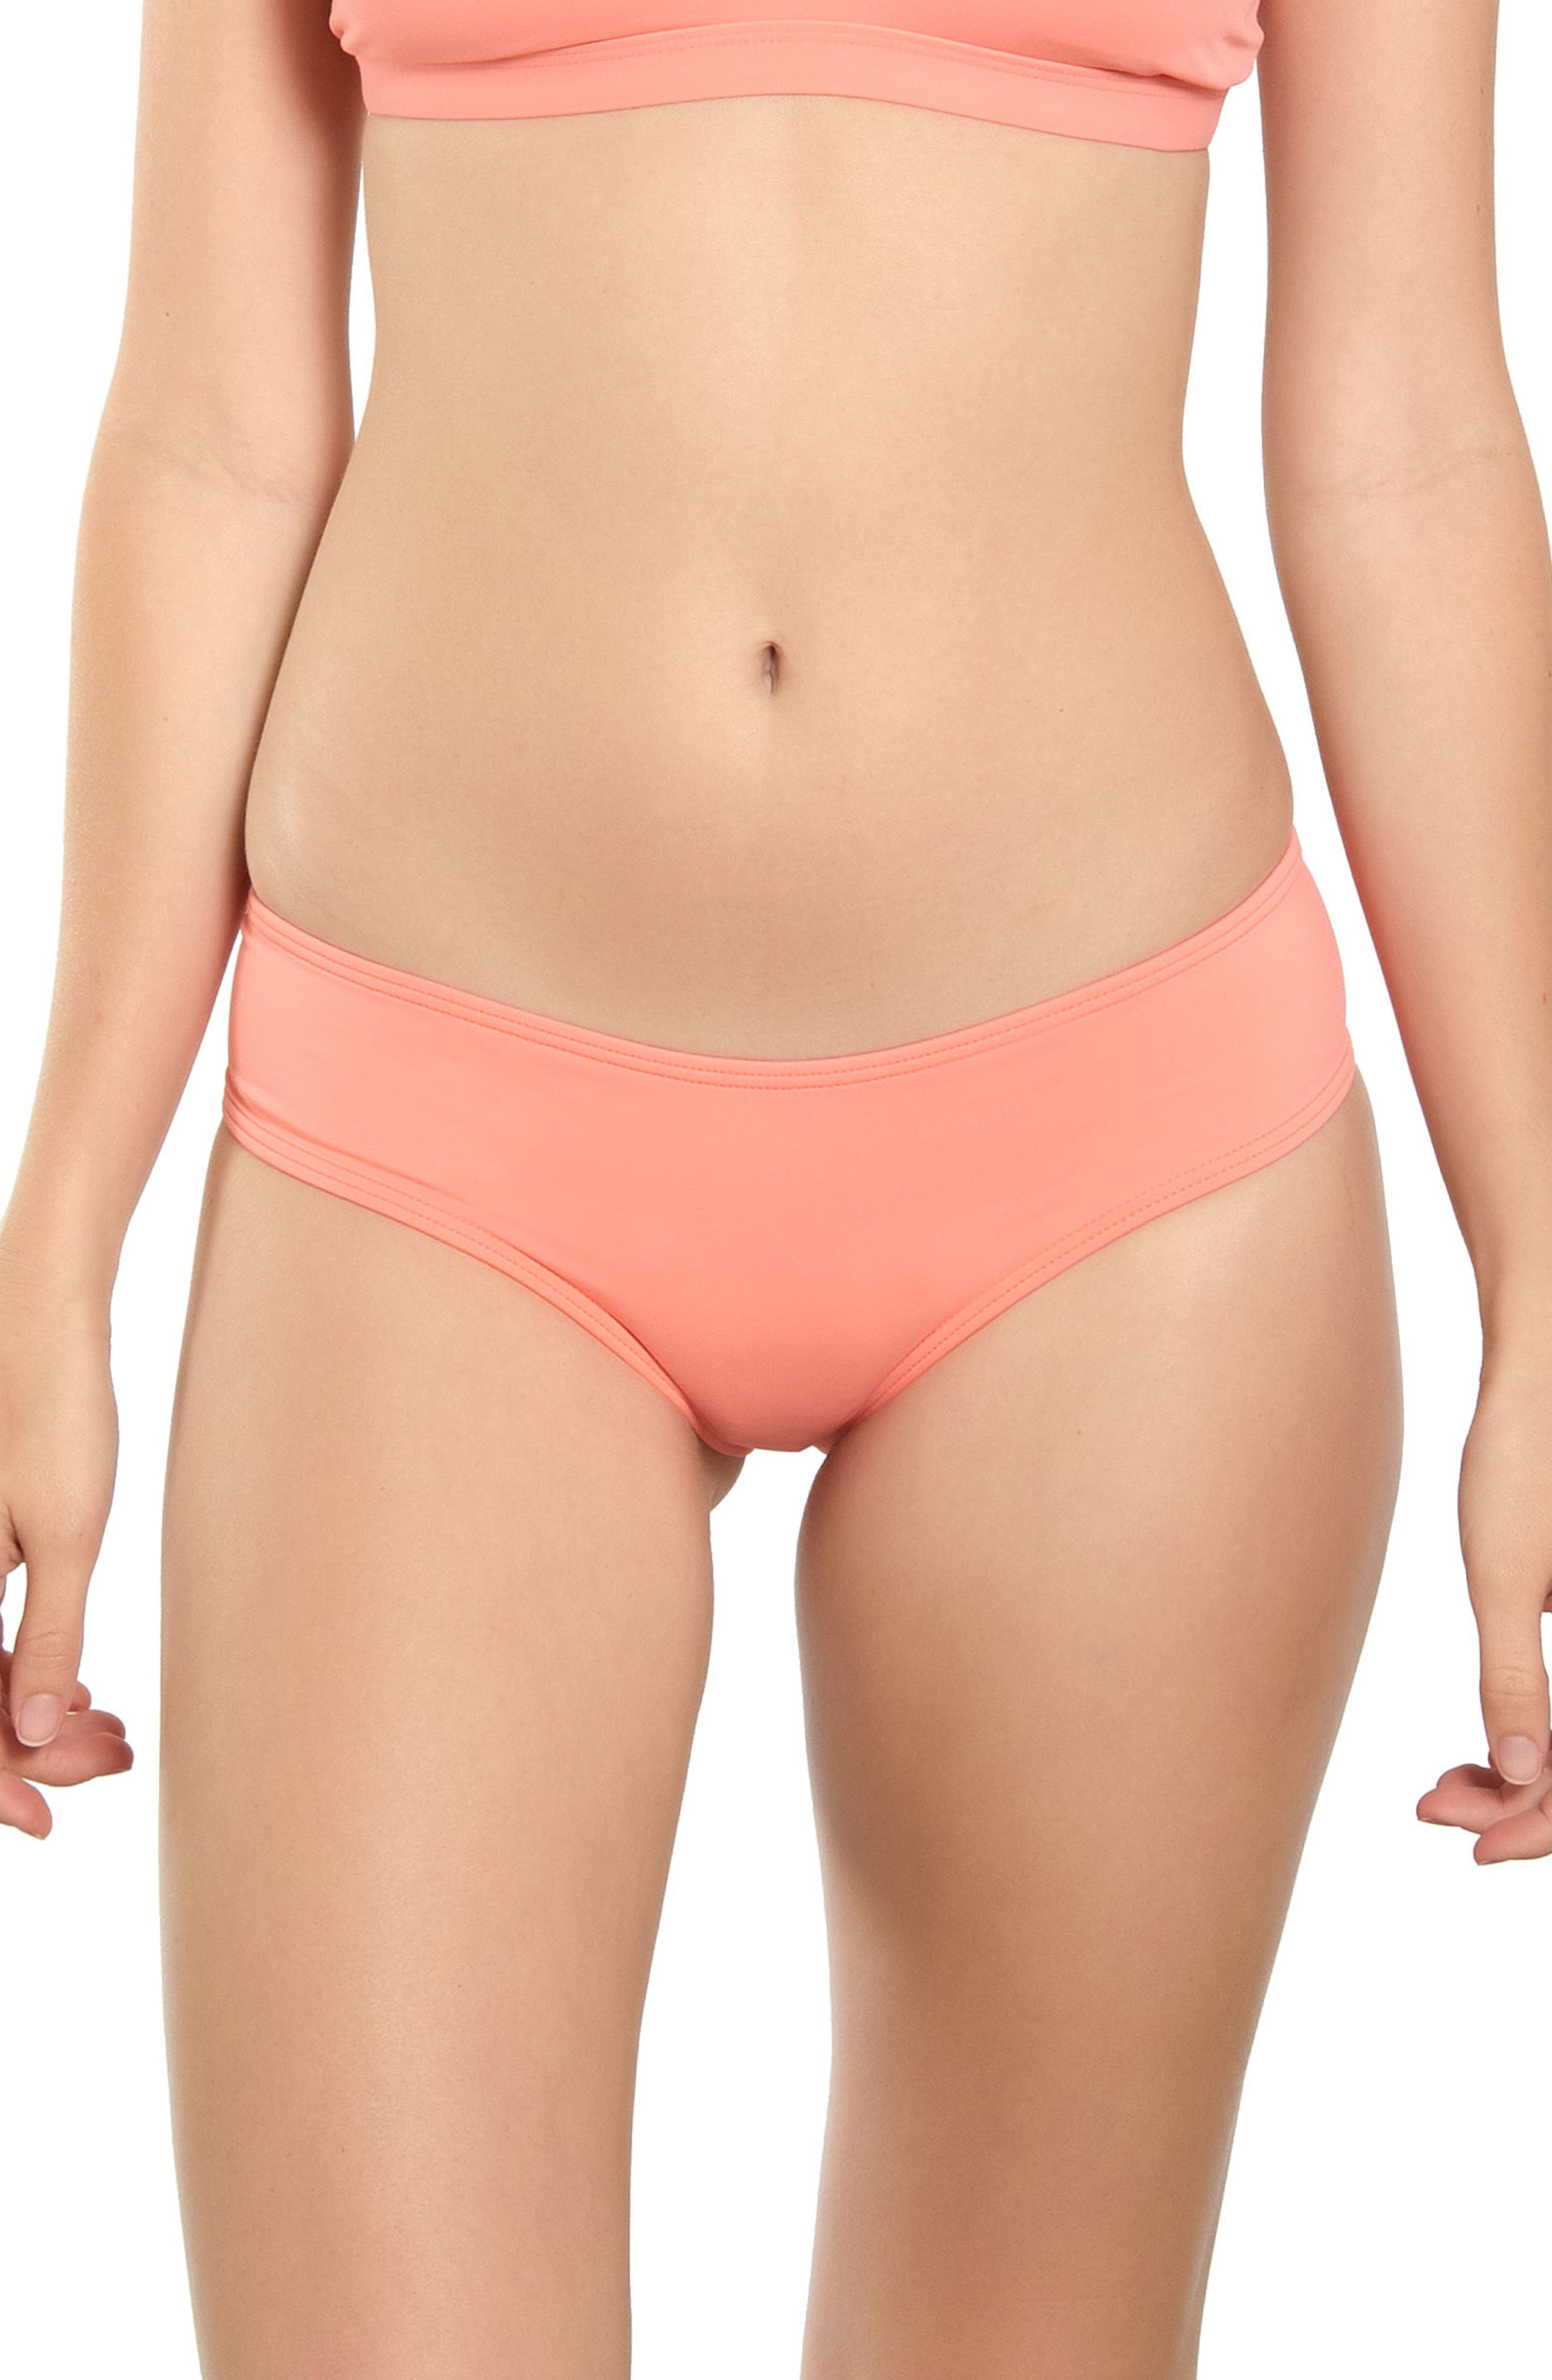 Salt Water Solids Hipster Bikini Bottoms,                         Main,                         color, Mai Tai